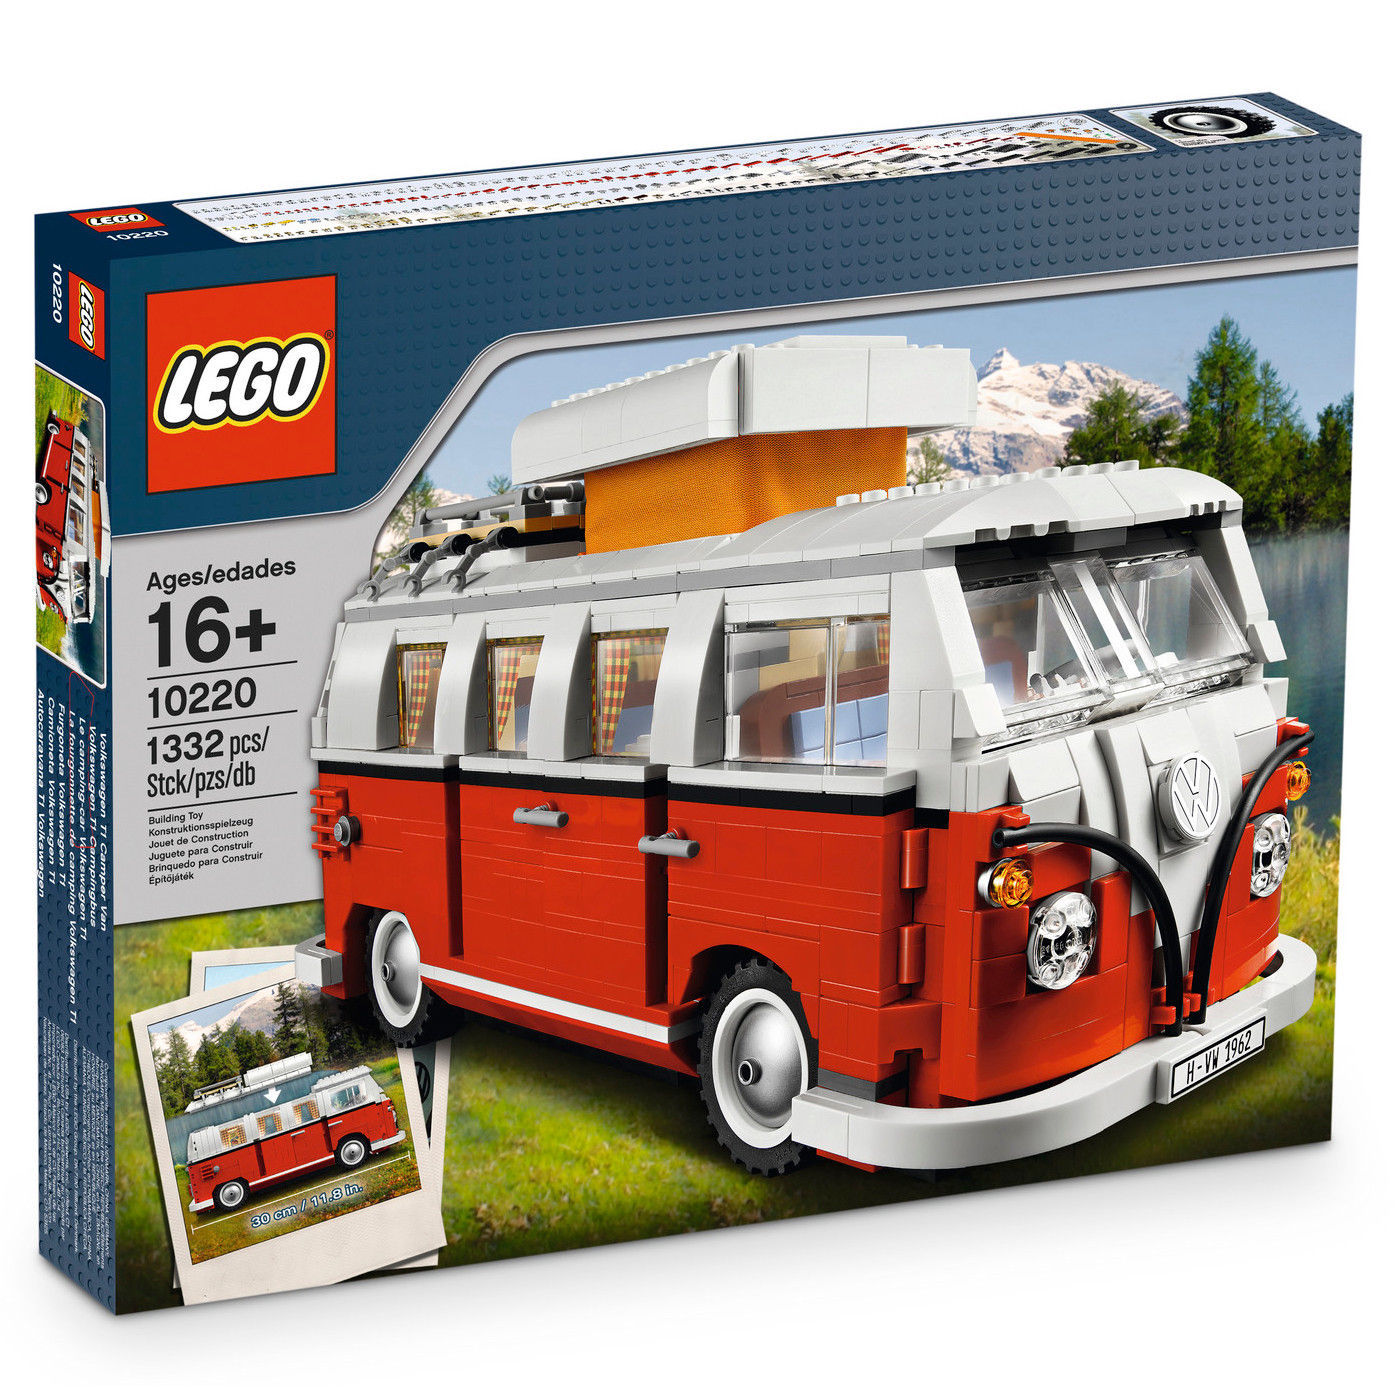 vw bulli lego spielzeug bausatz camping t1 rot wei kinderwelt accessoires volkswagen. Black Bedroom Furniture Sets. Home Design Ideas